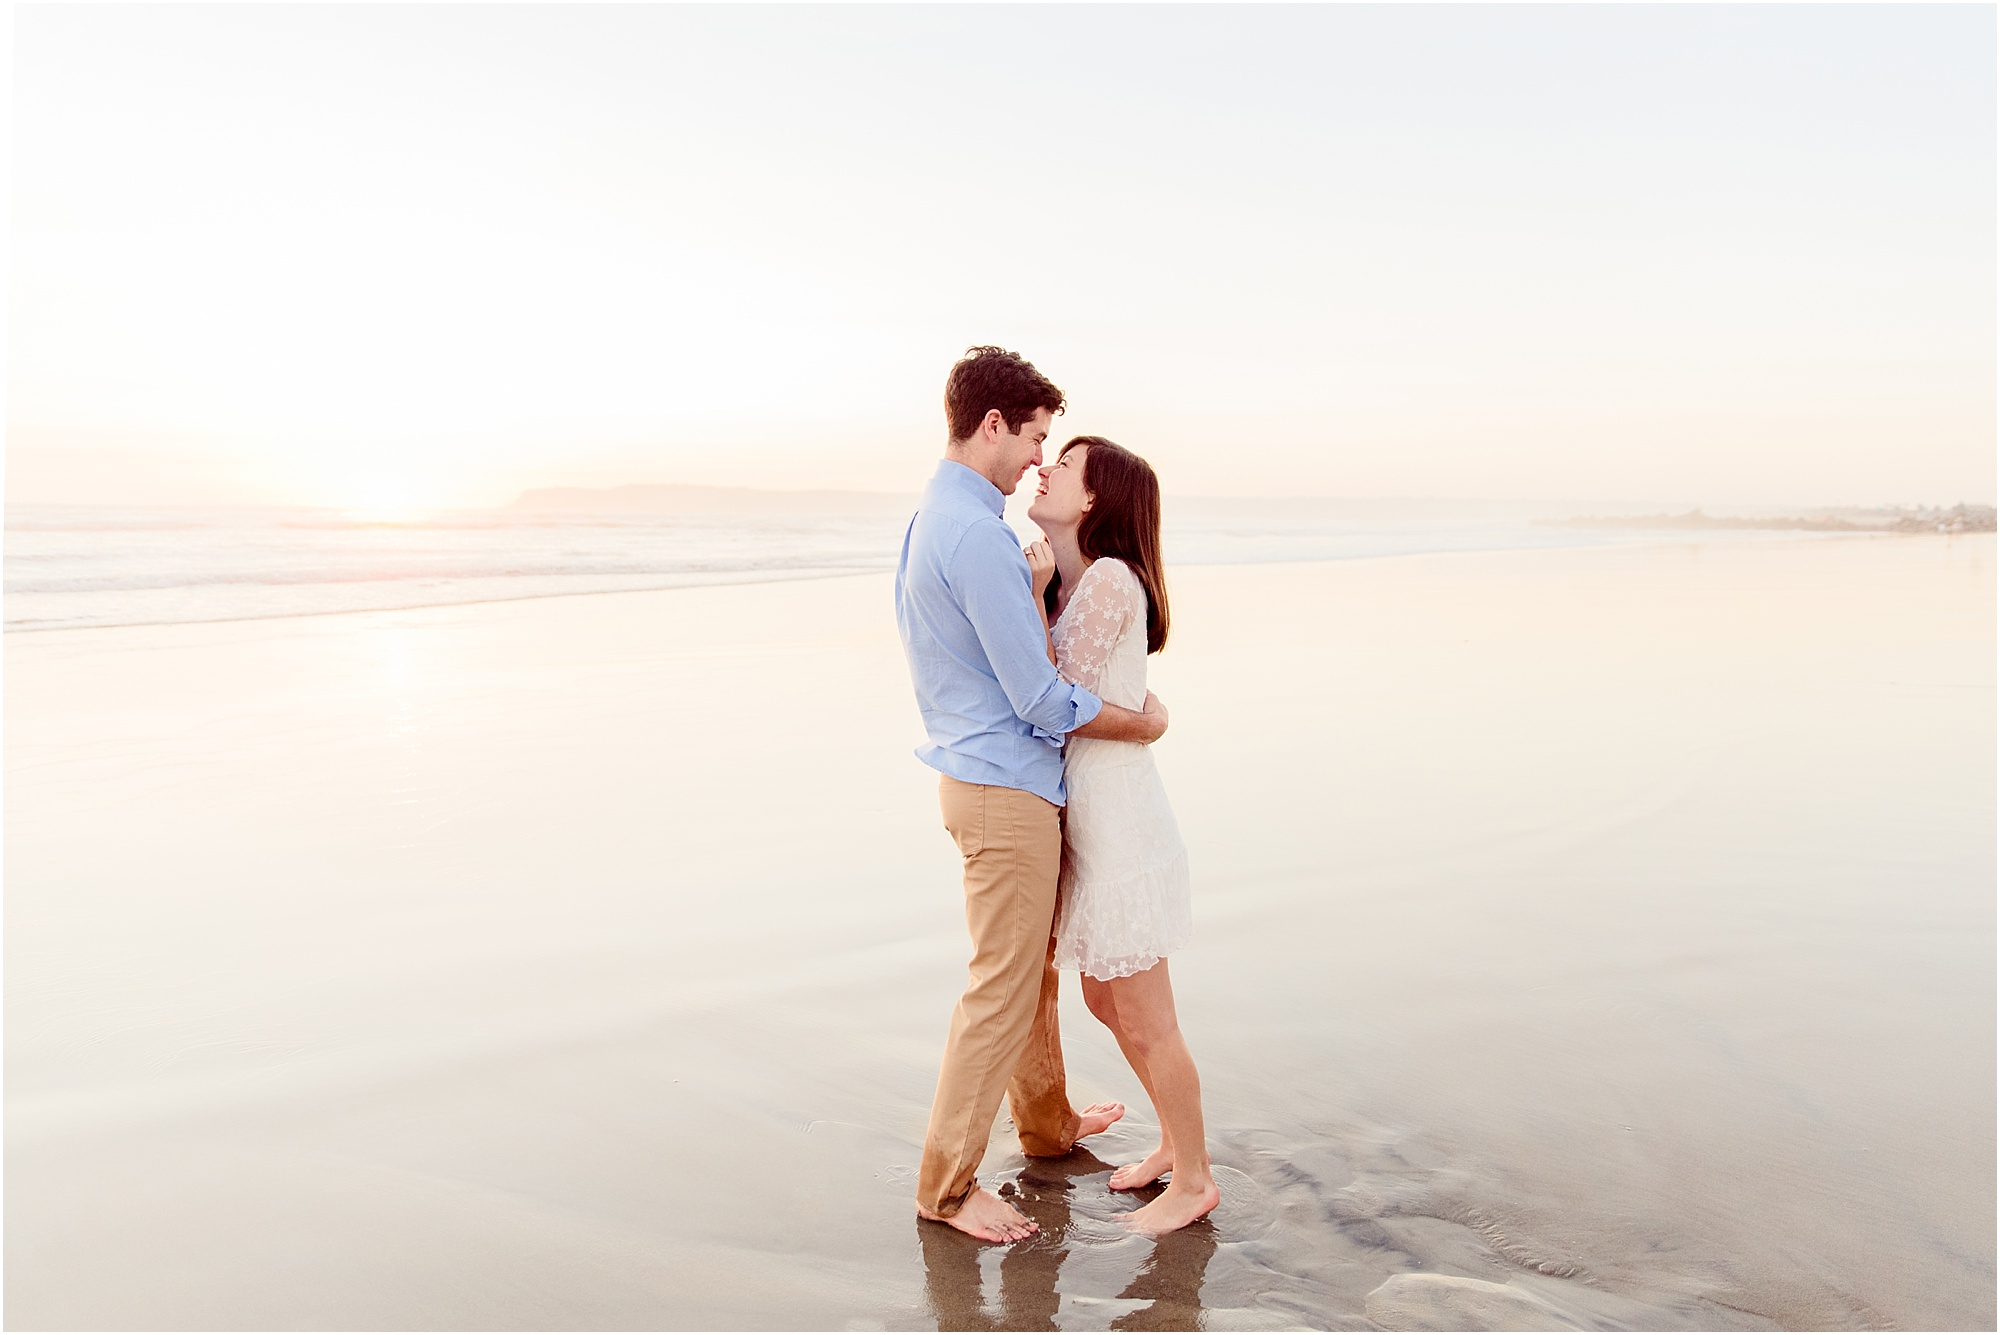 San Diego Photographer | Coronado Beach Photographer